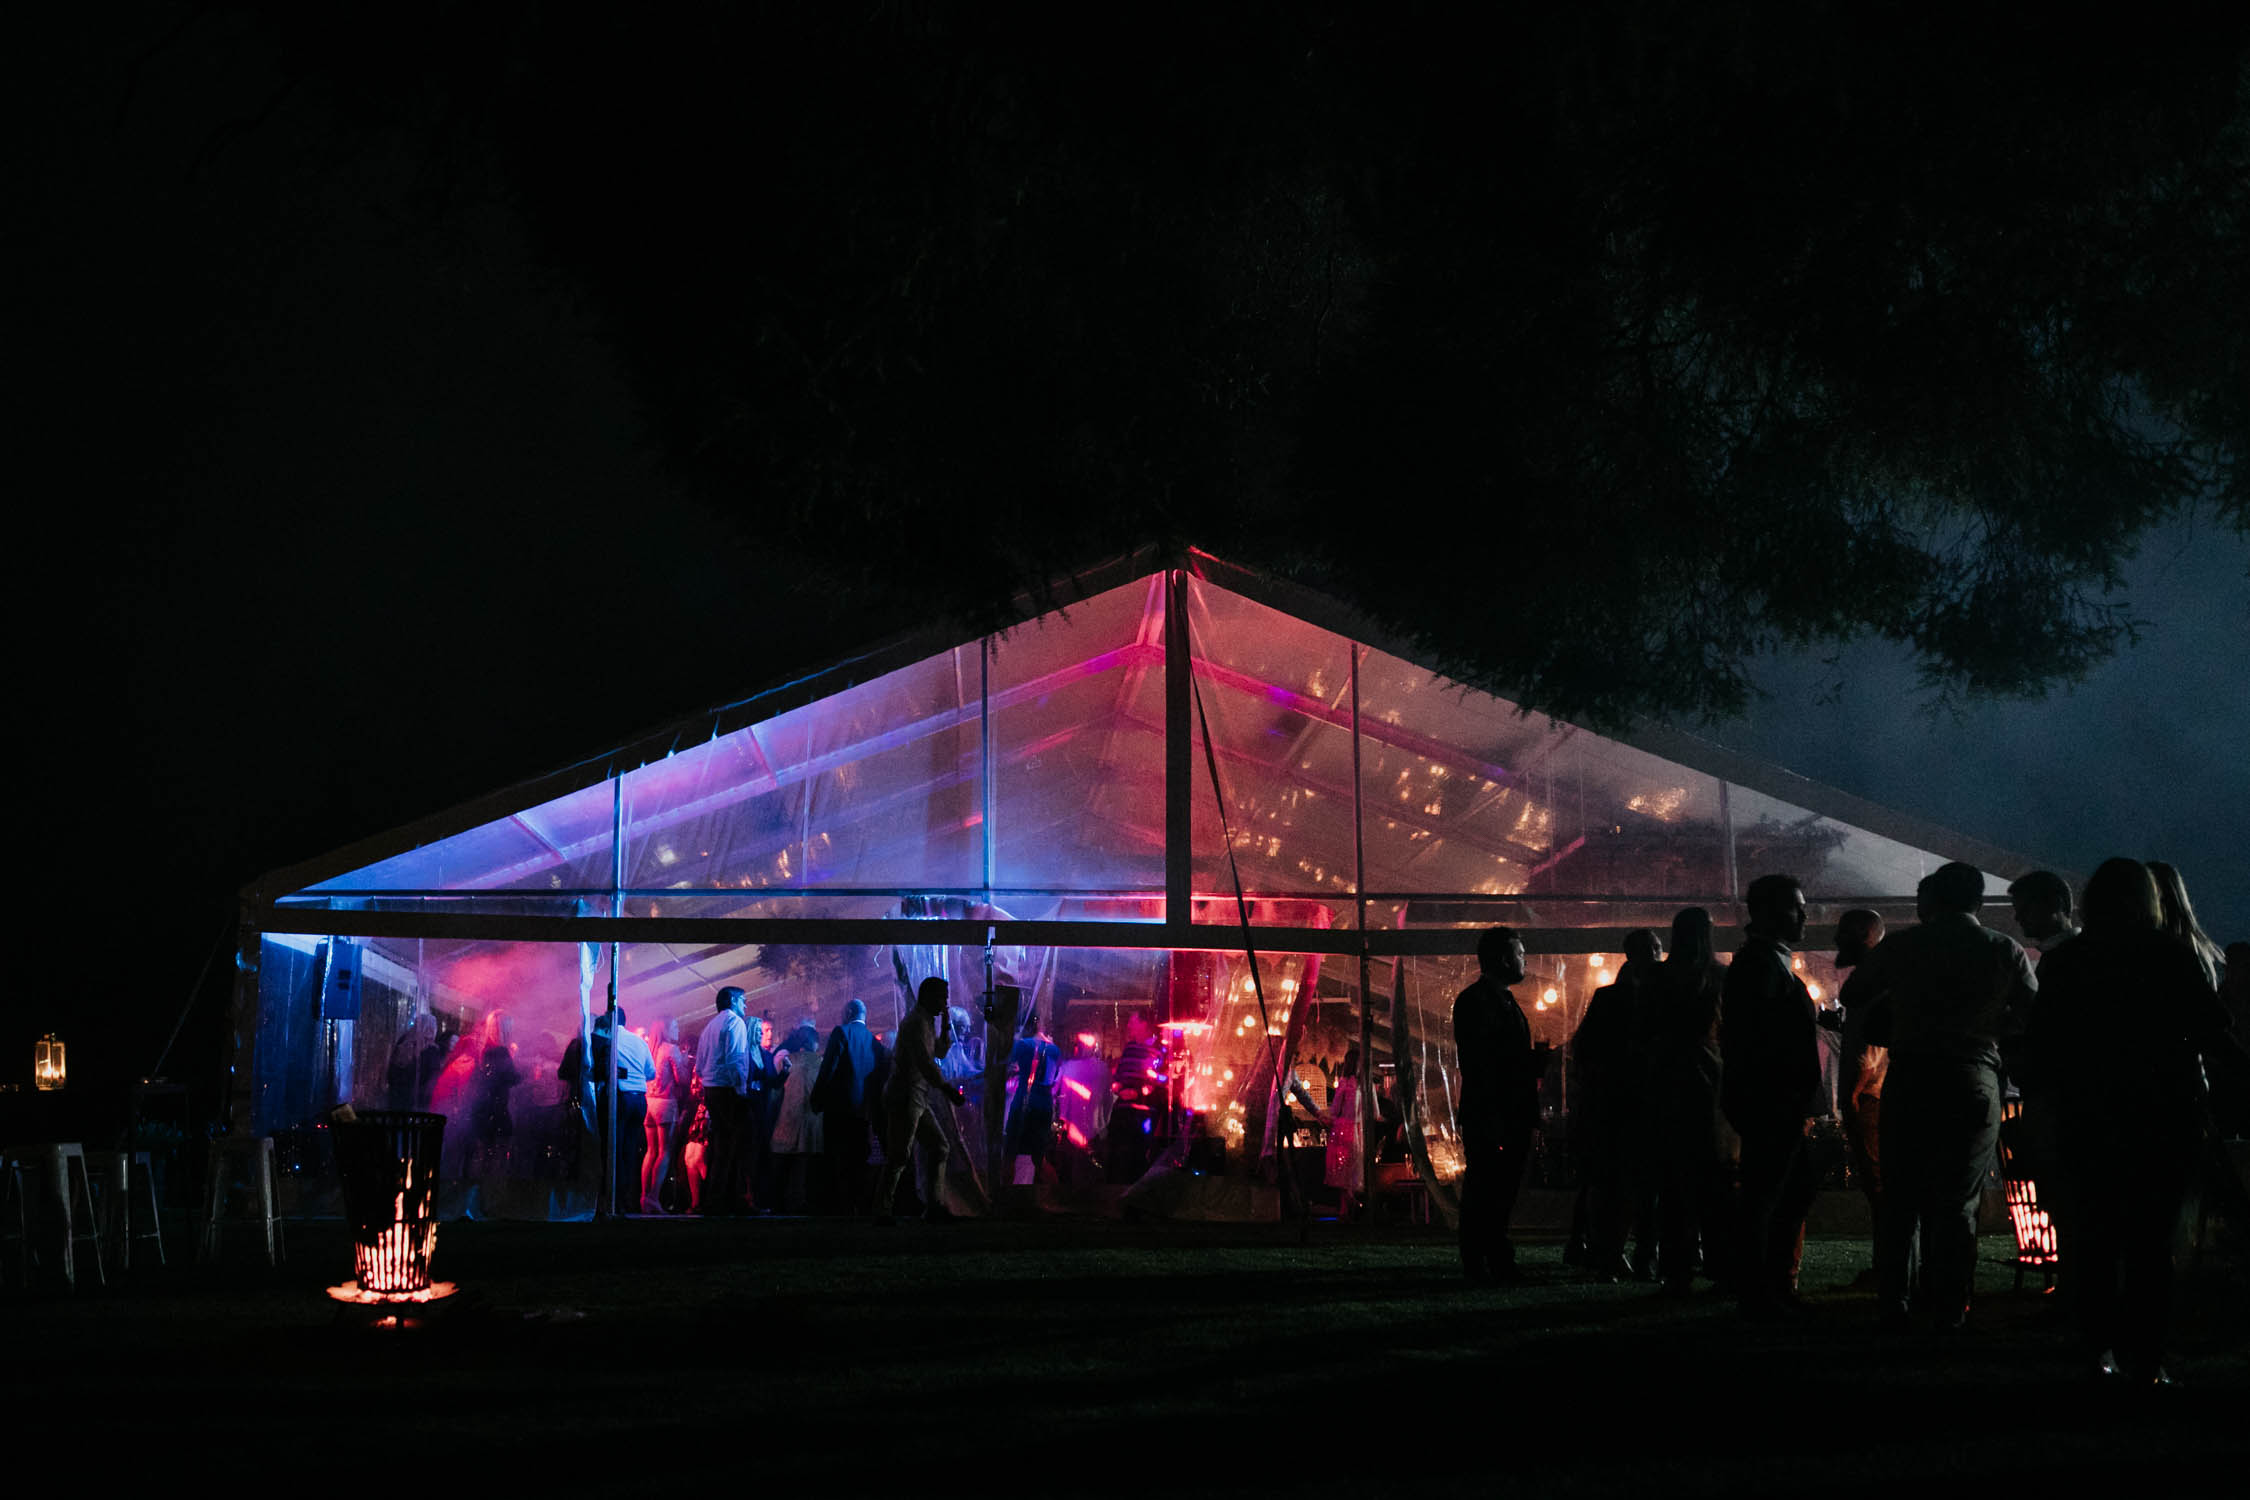 Fun photographs of guest dancing and having the best time at a wedding reception with blue and pink lights seen from outside the glass tent